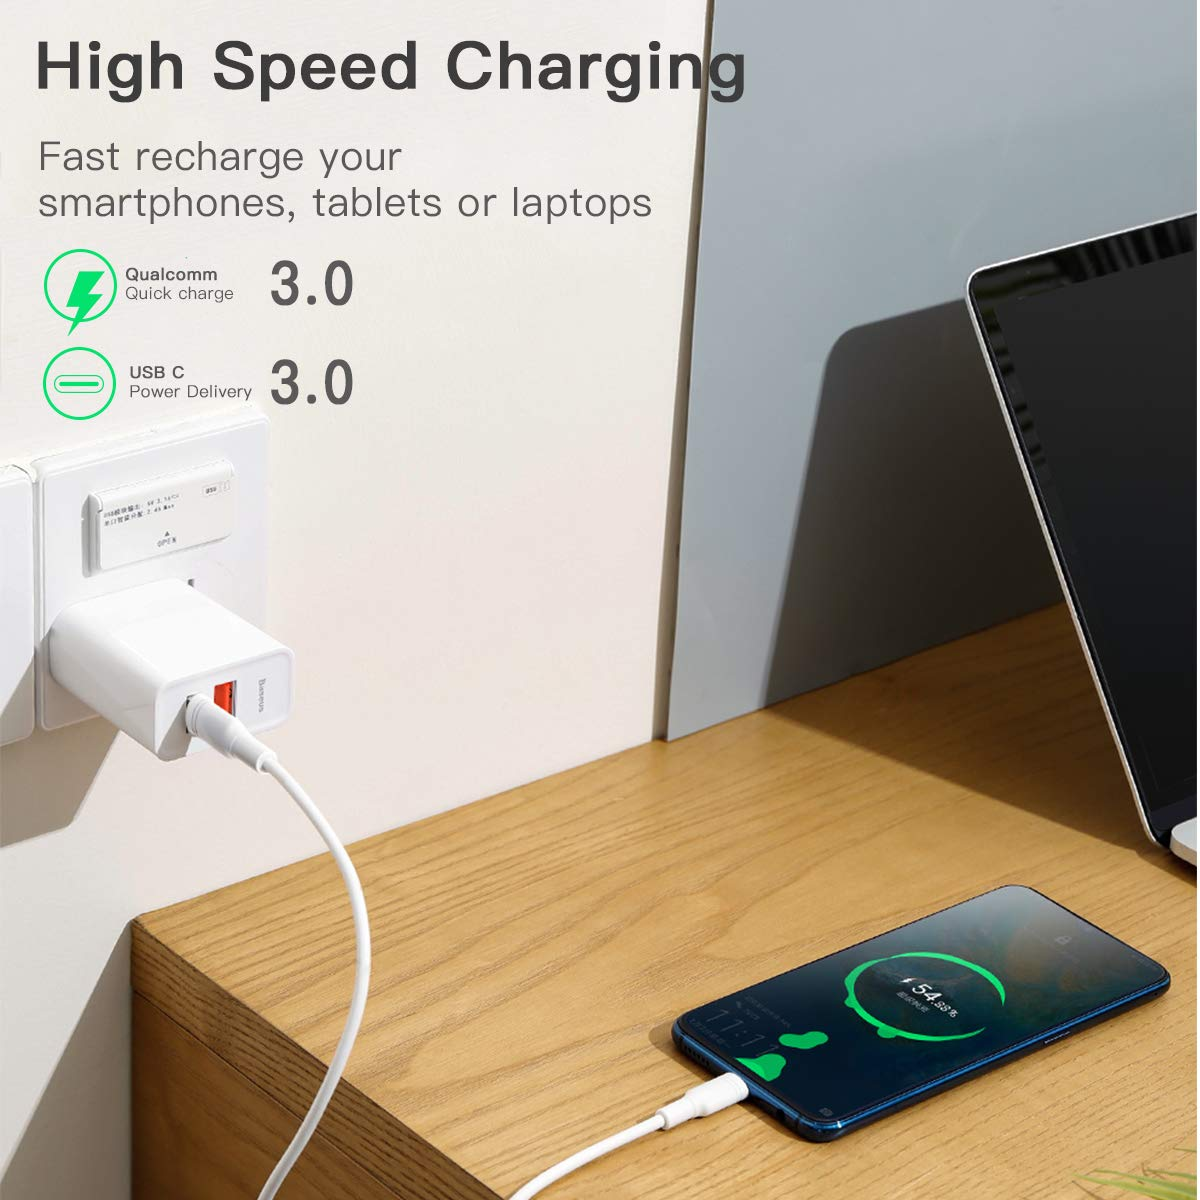 USB C Wall Charger with USB C Cable 3.3FT, Baseus 30W Quick Charger with PD3.0 and QC3.0,Dual USB Charger for iPhone 11/11 Pro/11 Pro ...